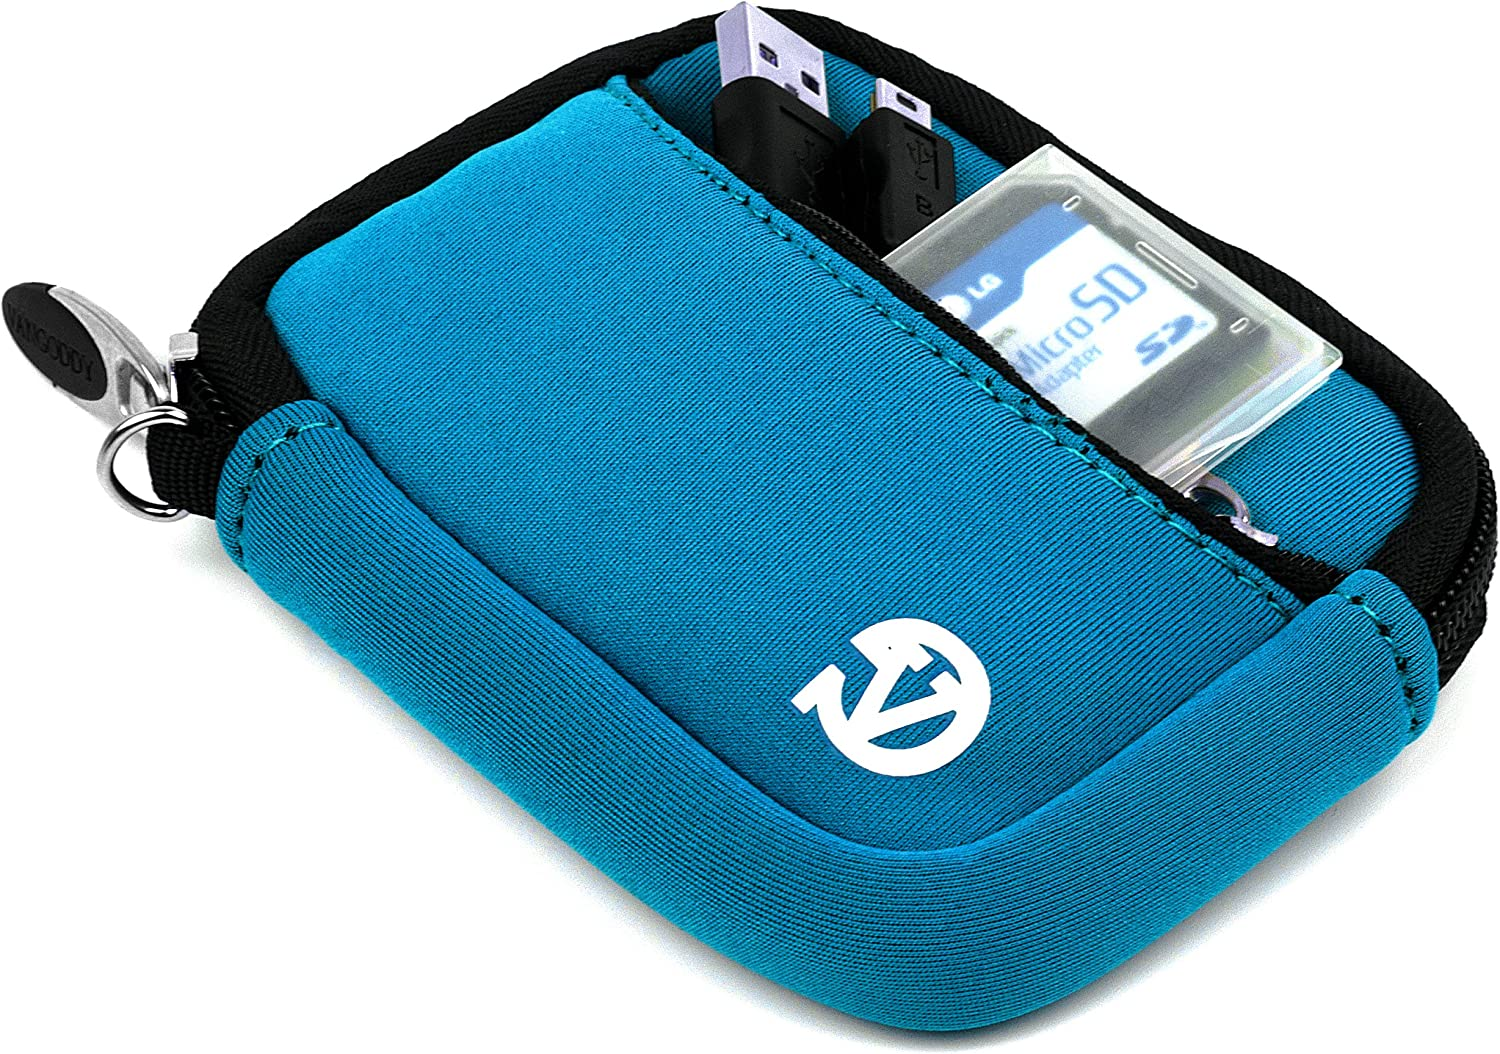 Sky Blue VanGoddy Mini Glove Sleeve Pouch Case for General Imaging Digital Cameras and Screen Protector